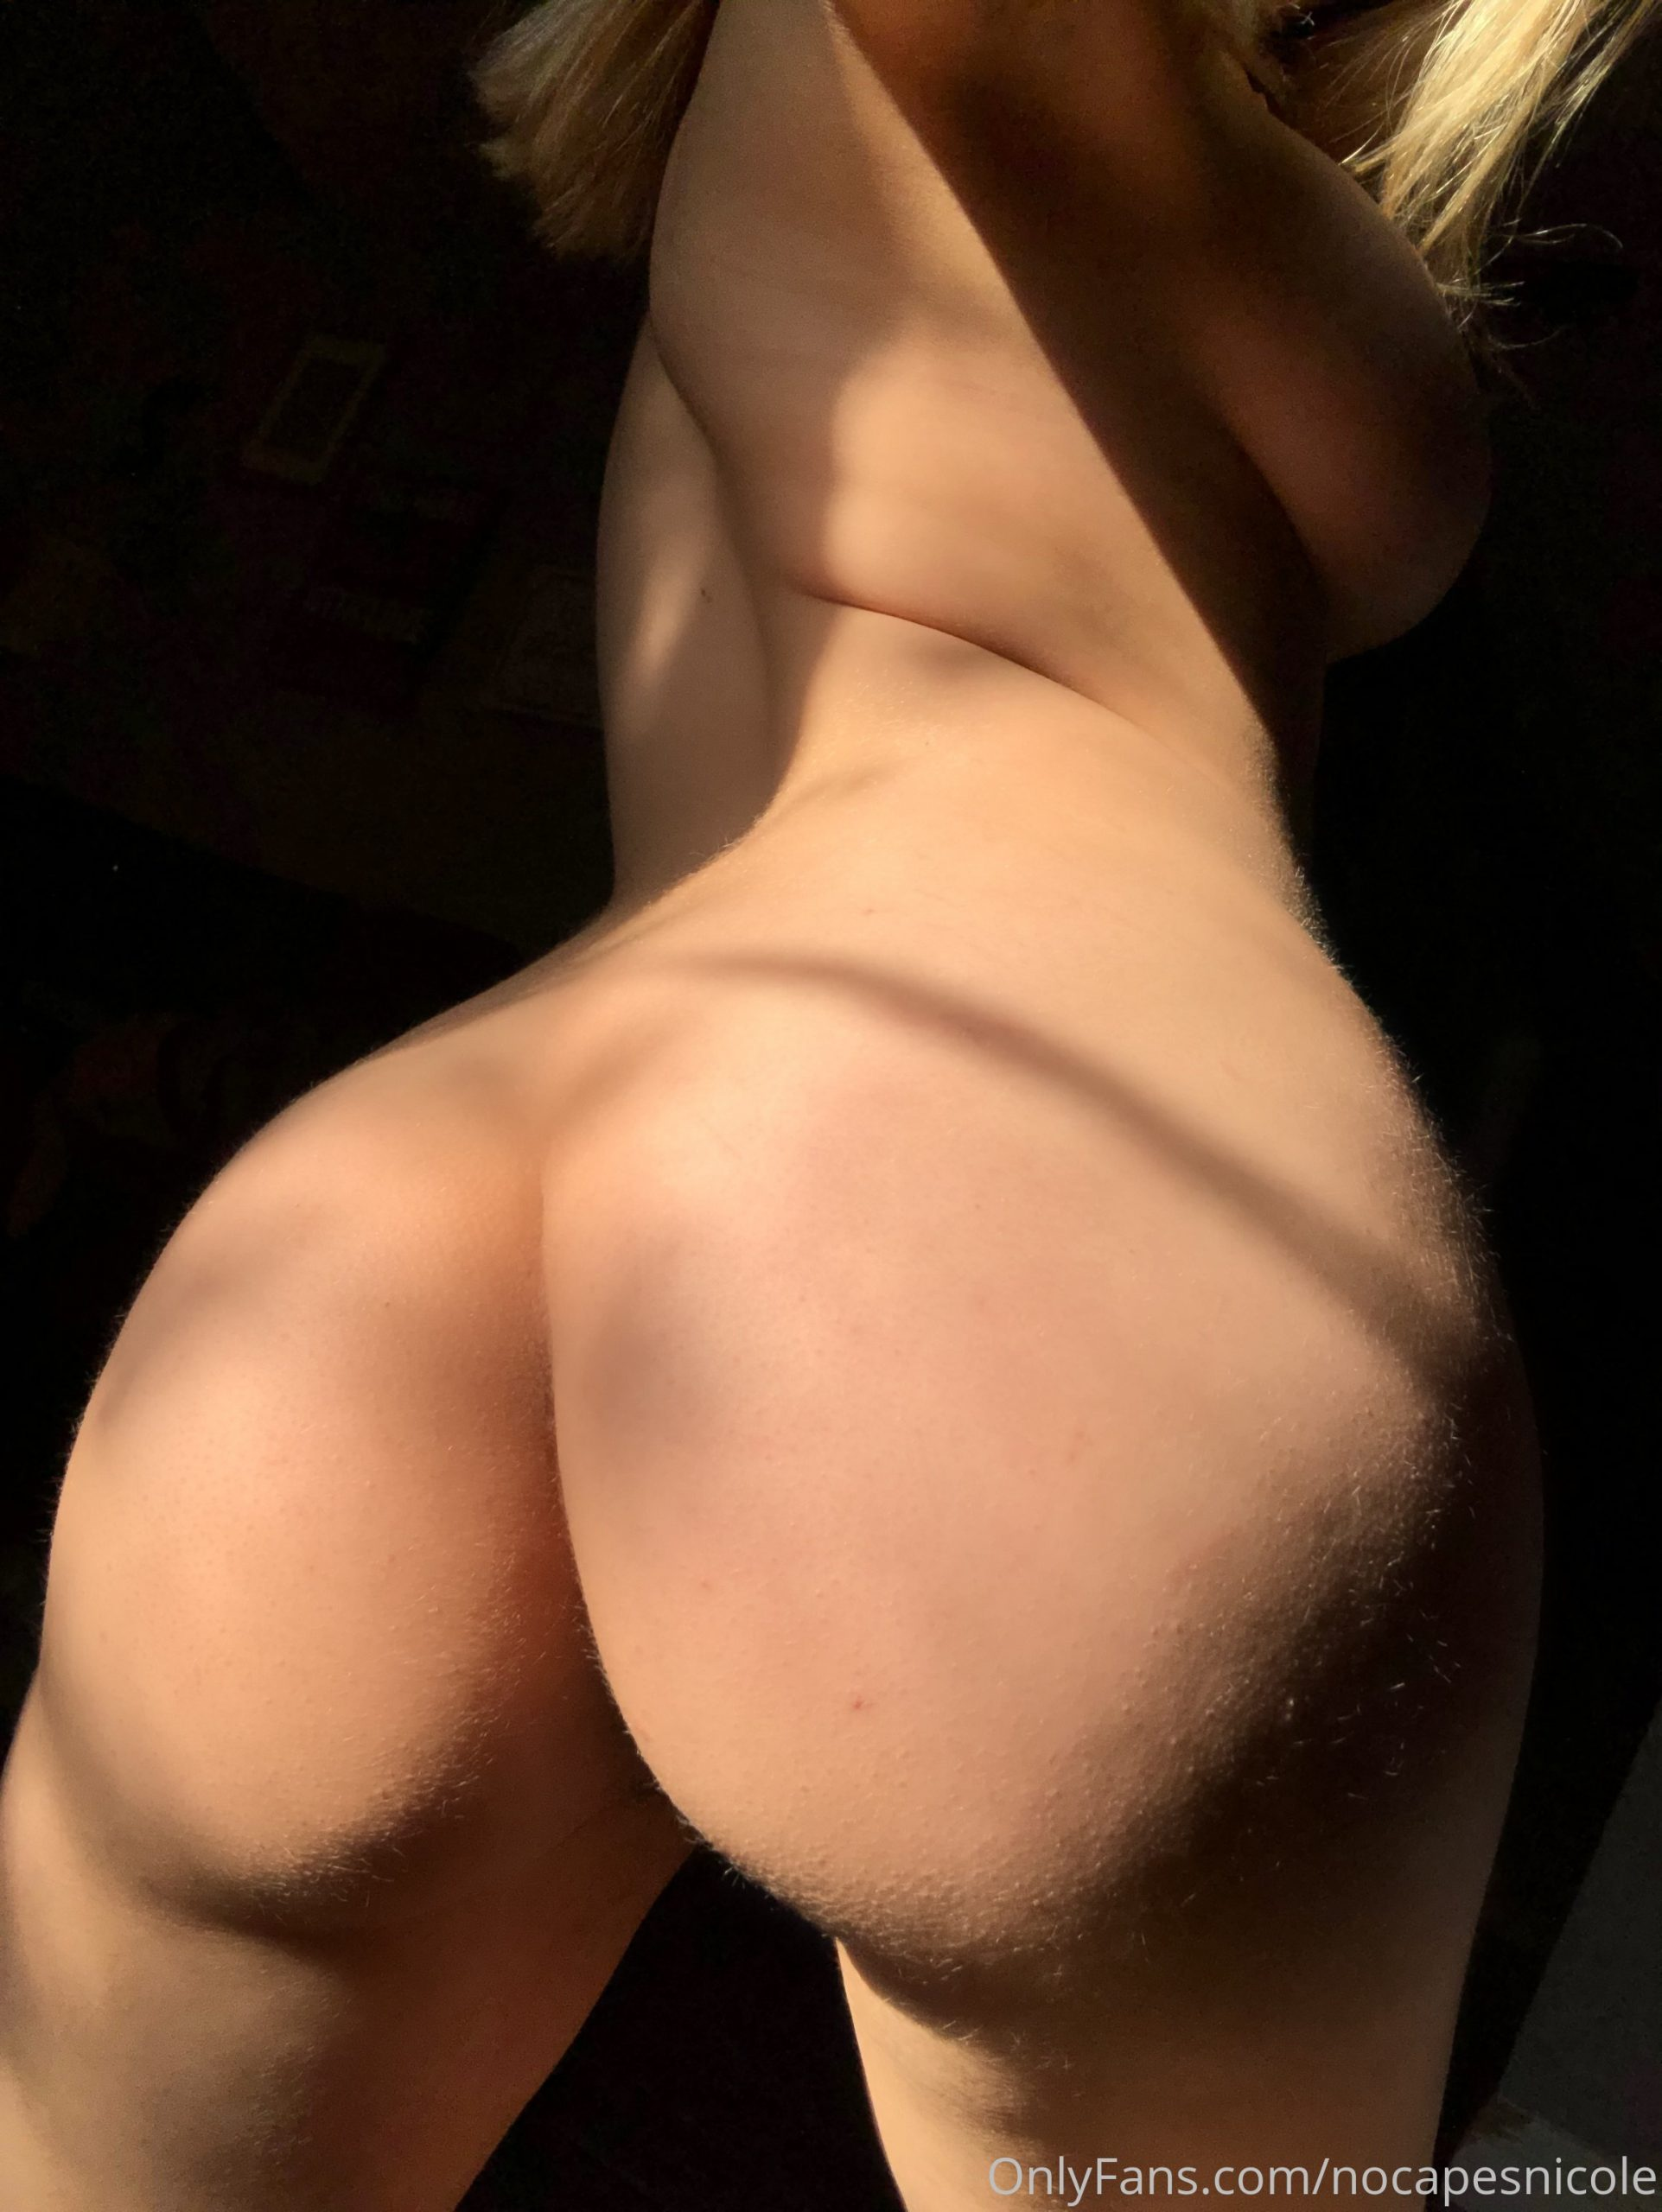 Nocapesnicole Nude Onlyfans 0009